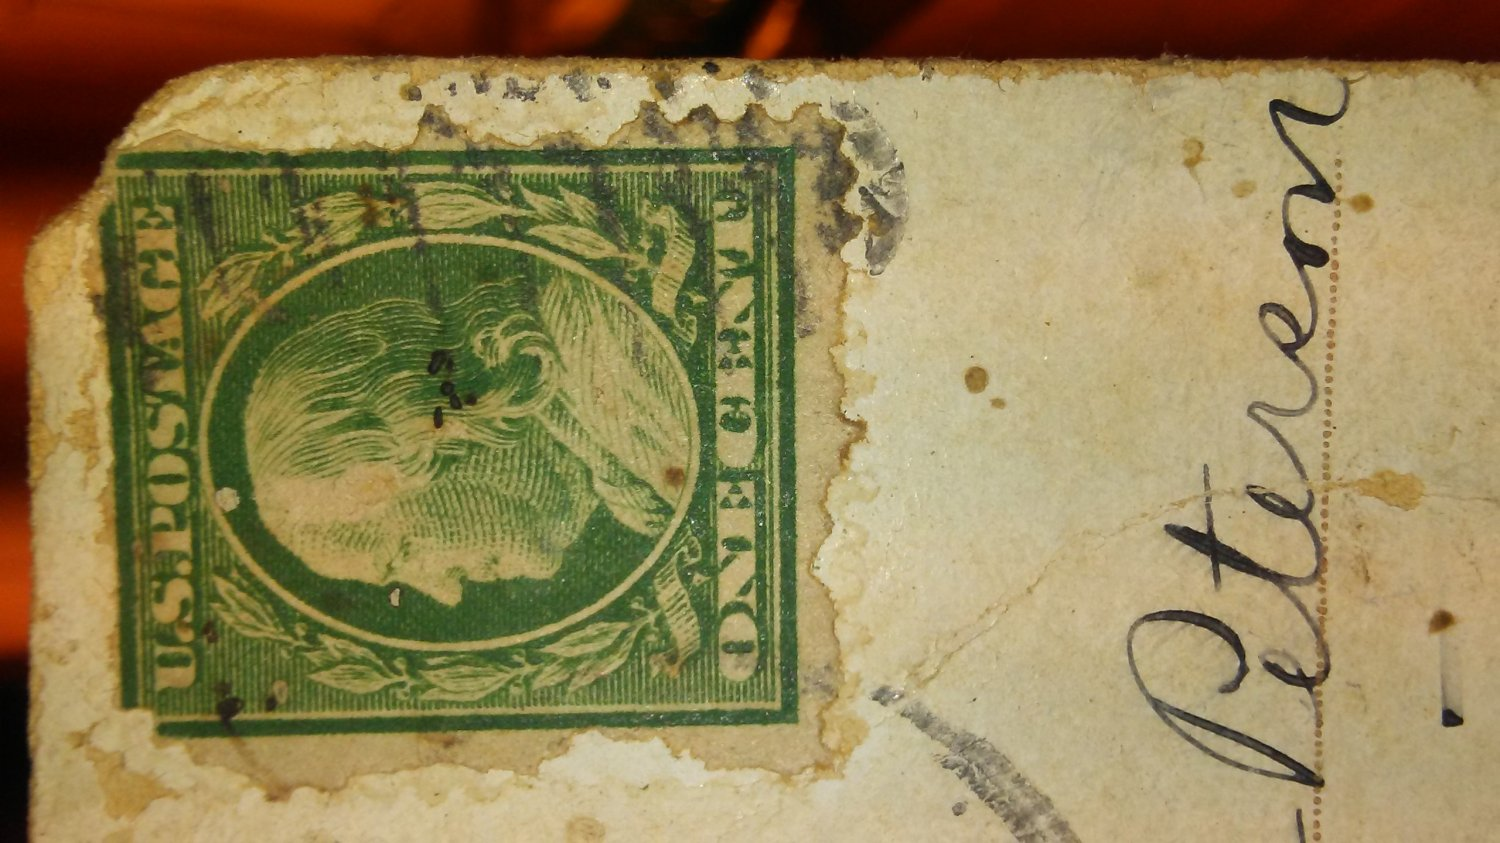 Franklin one cent green stamp